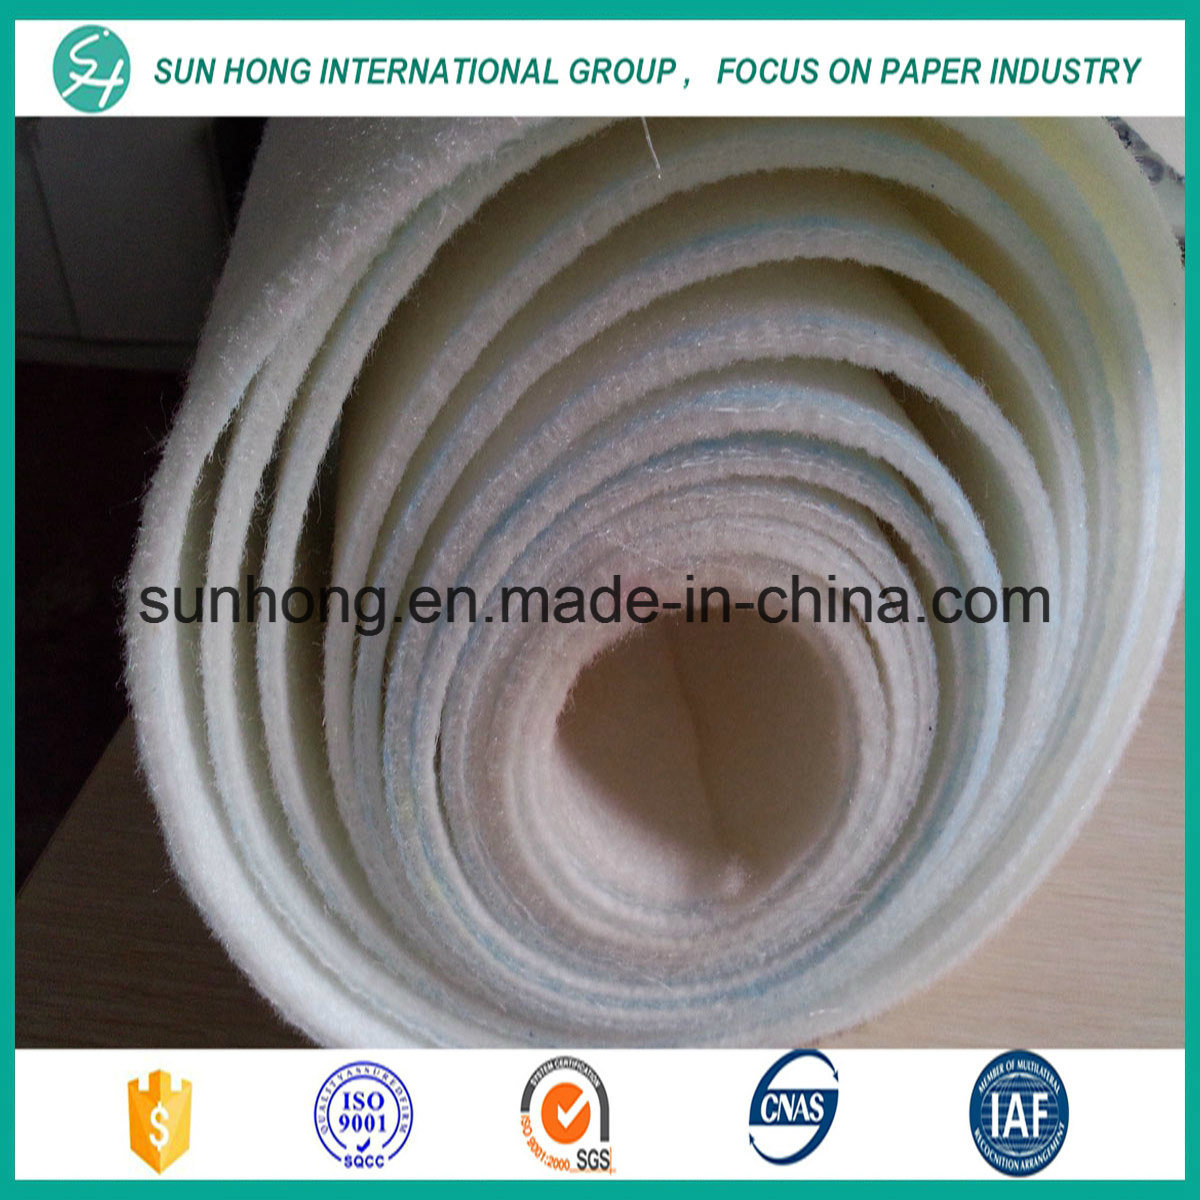 100% Synthetic Bob Felt for Forming /Press/Drying Section